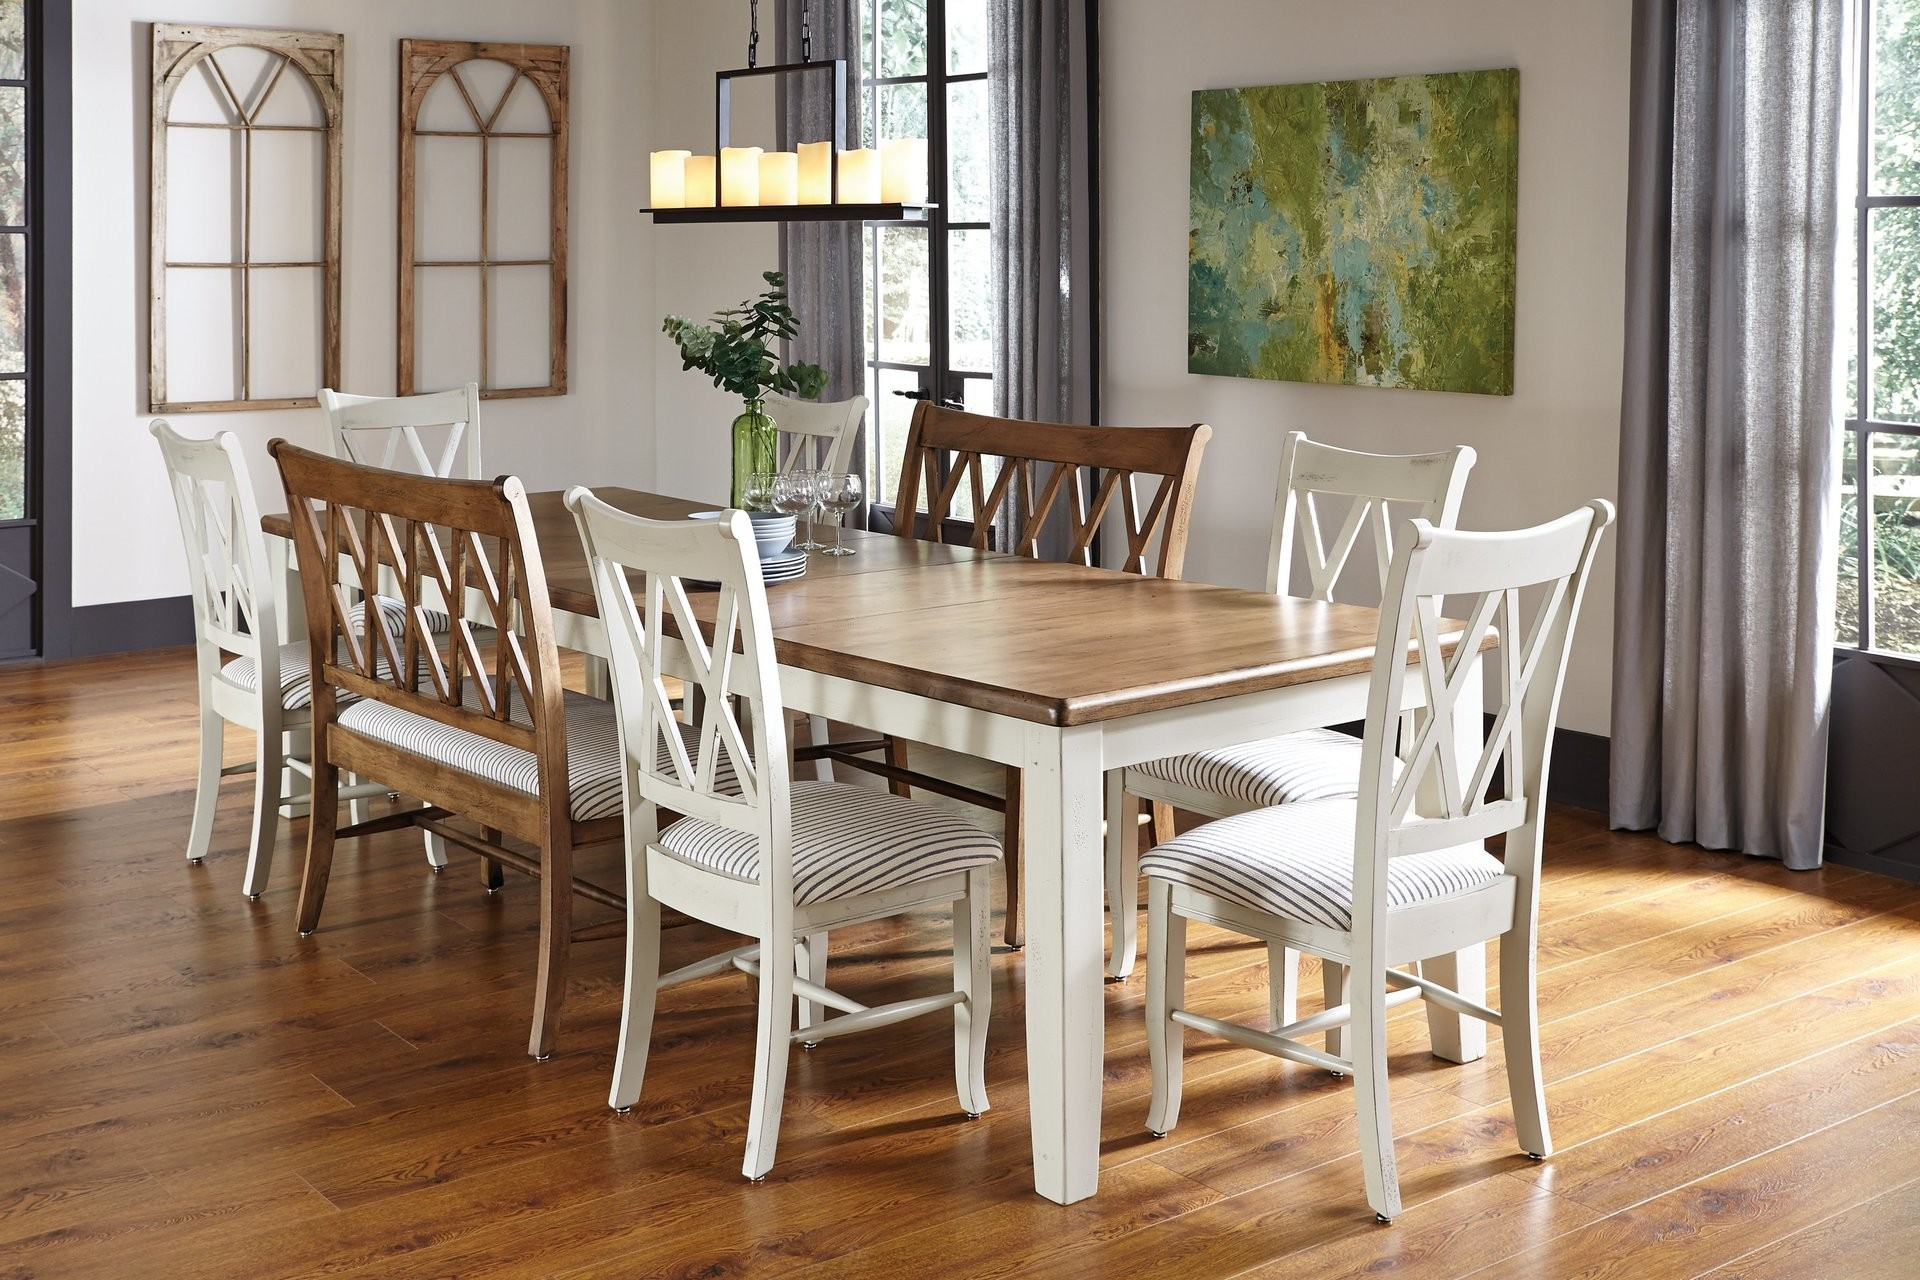 Louise's Real Wood Furniture